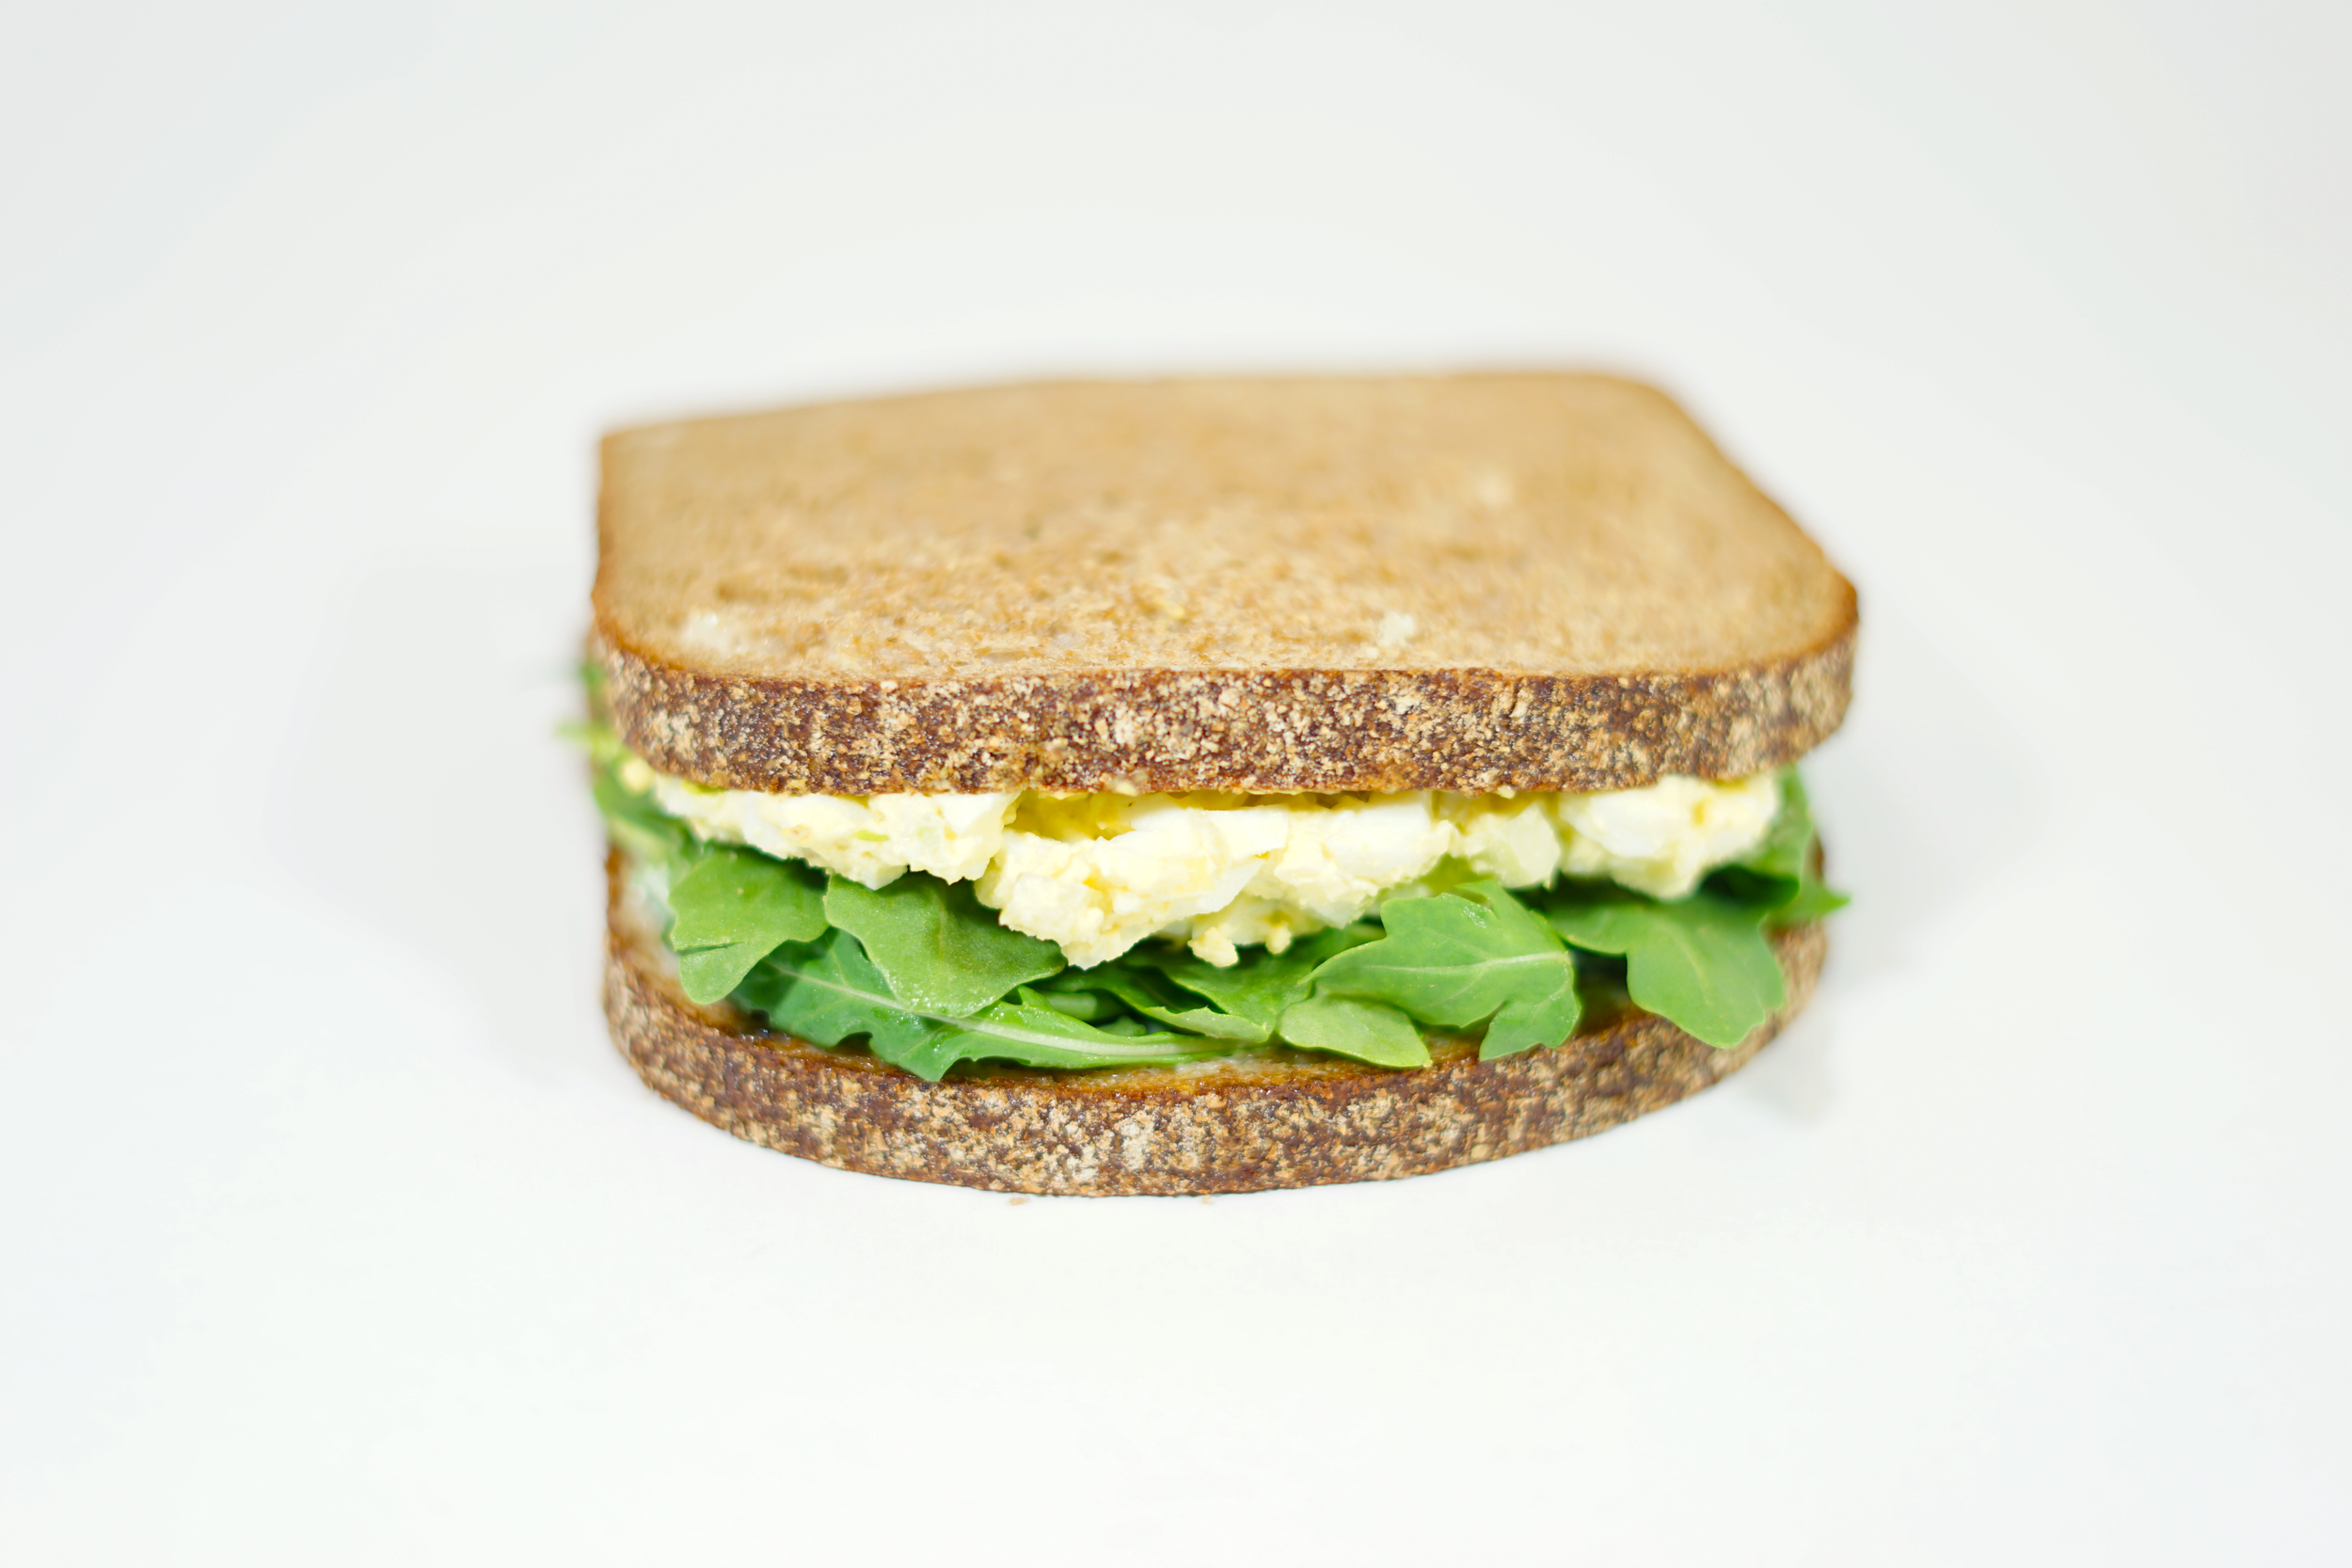 Egg Salad - On Buttermilk Whole Wheat bread with your choice of arugula greens or lettuce and mayo.